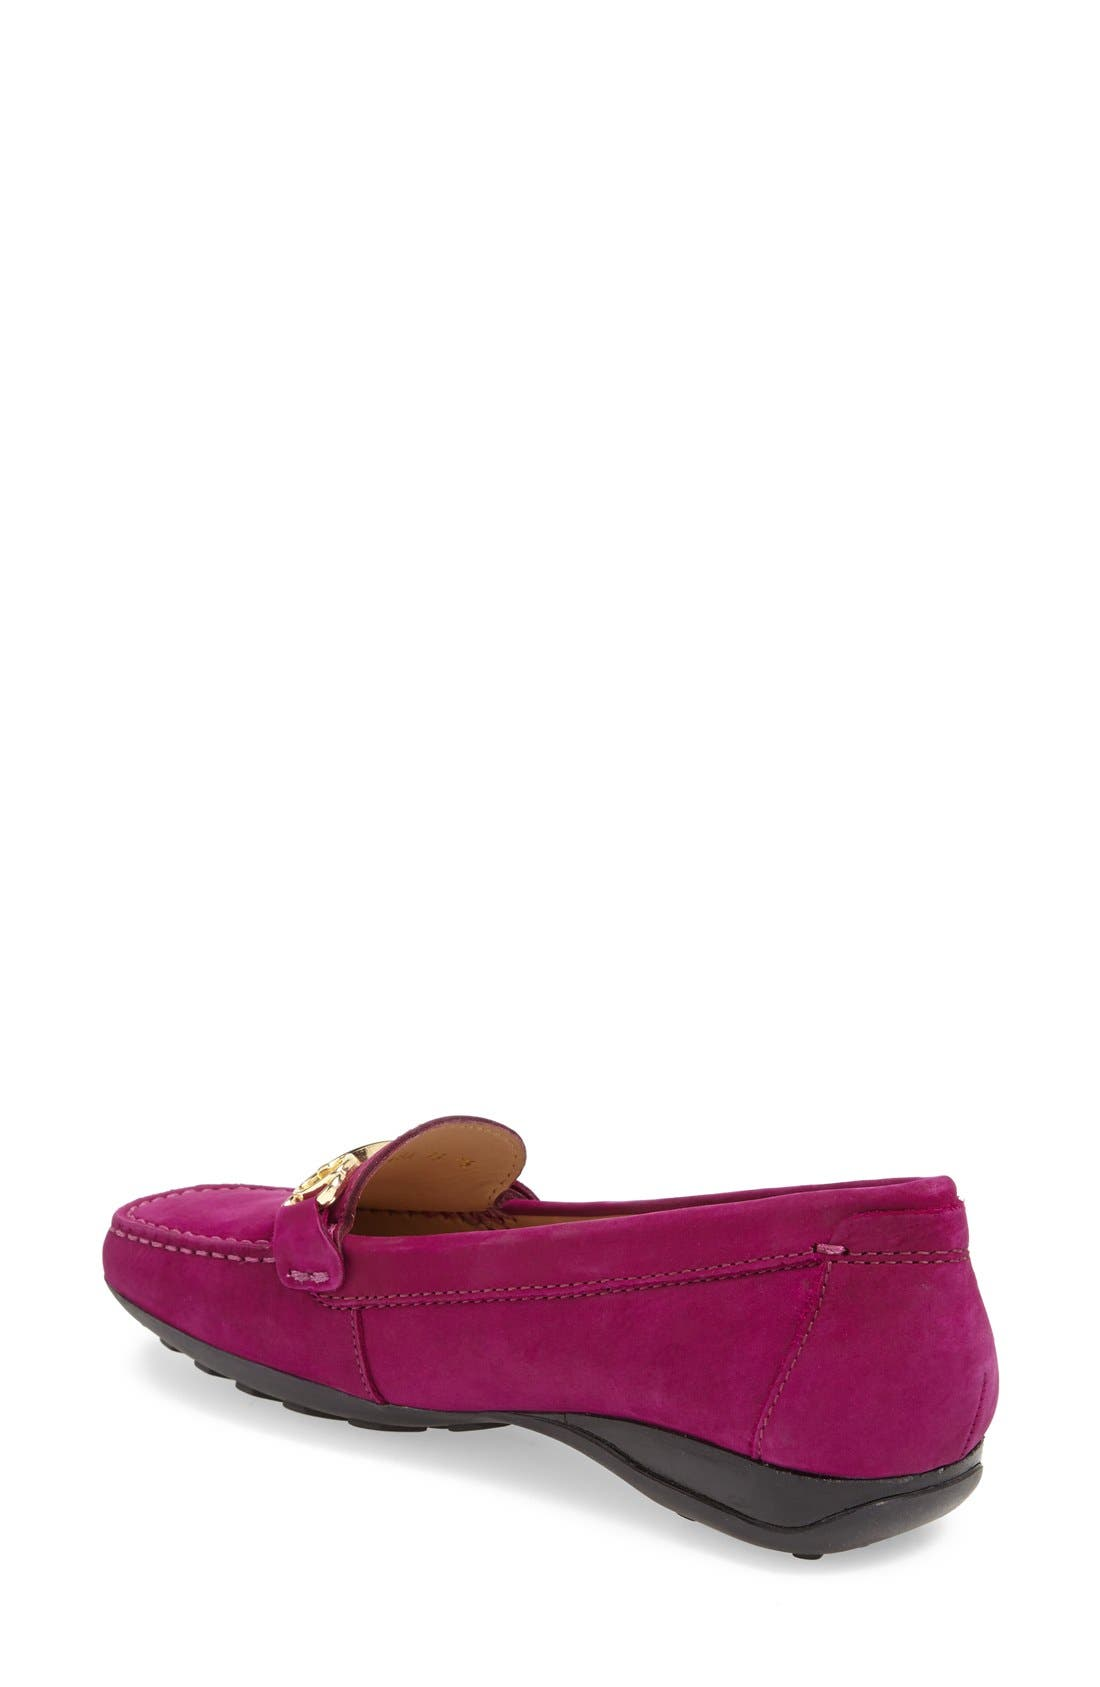 Euro 67 Loafer,                             Alternate thumbnail 32, color,